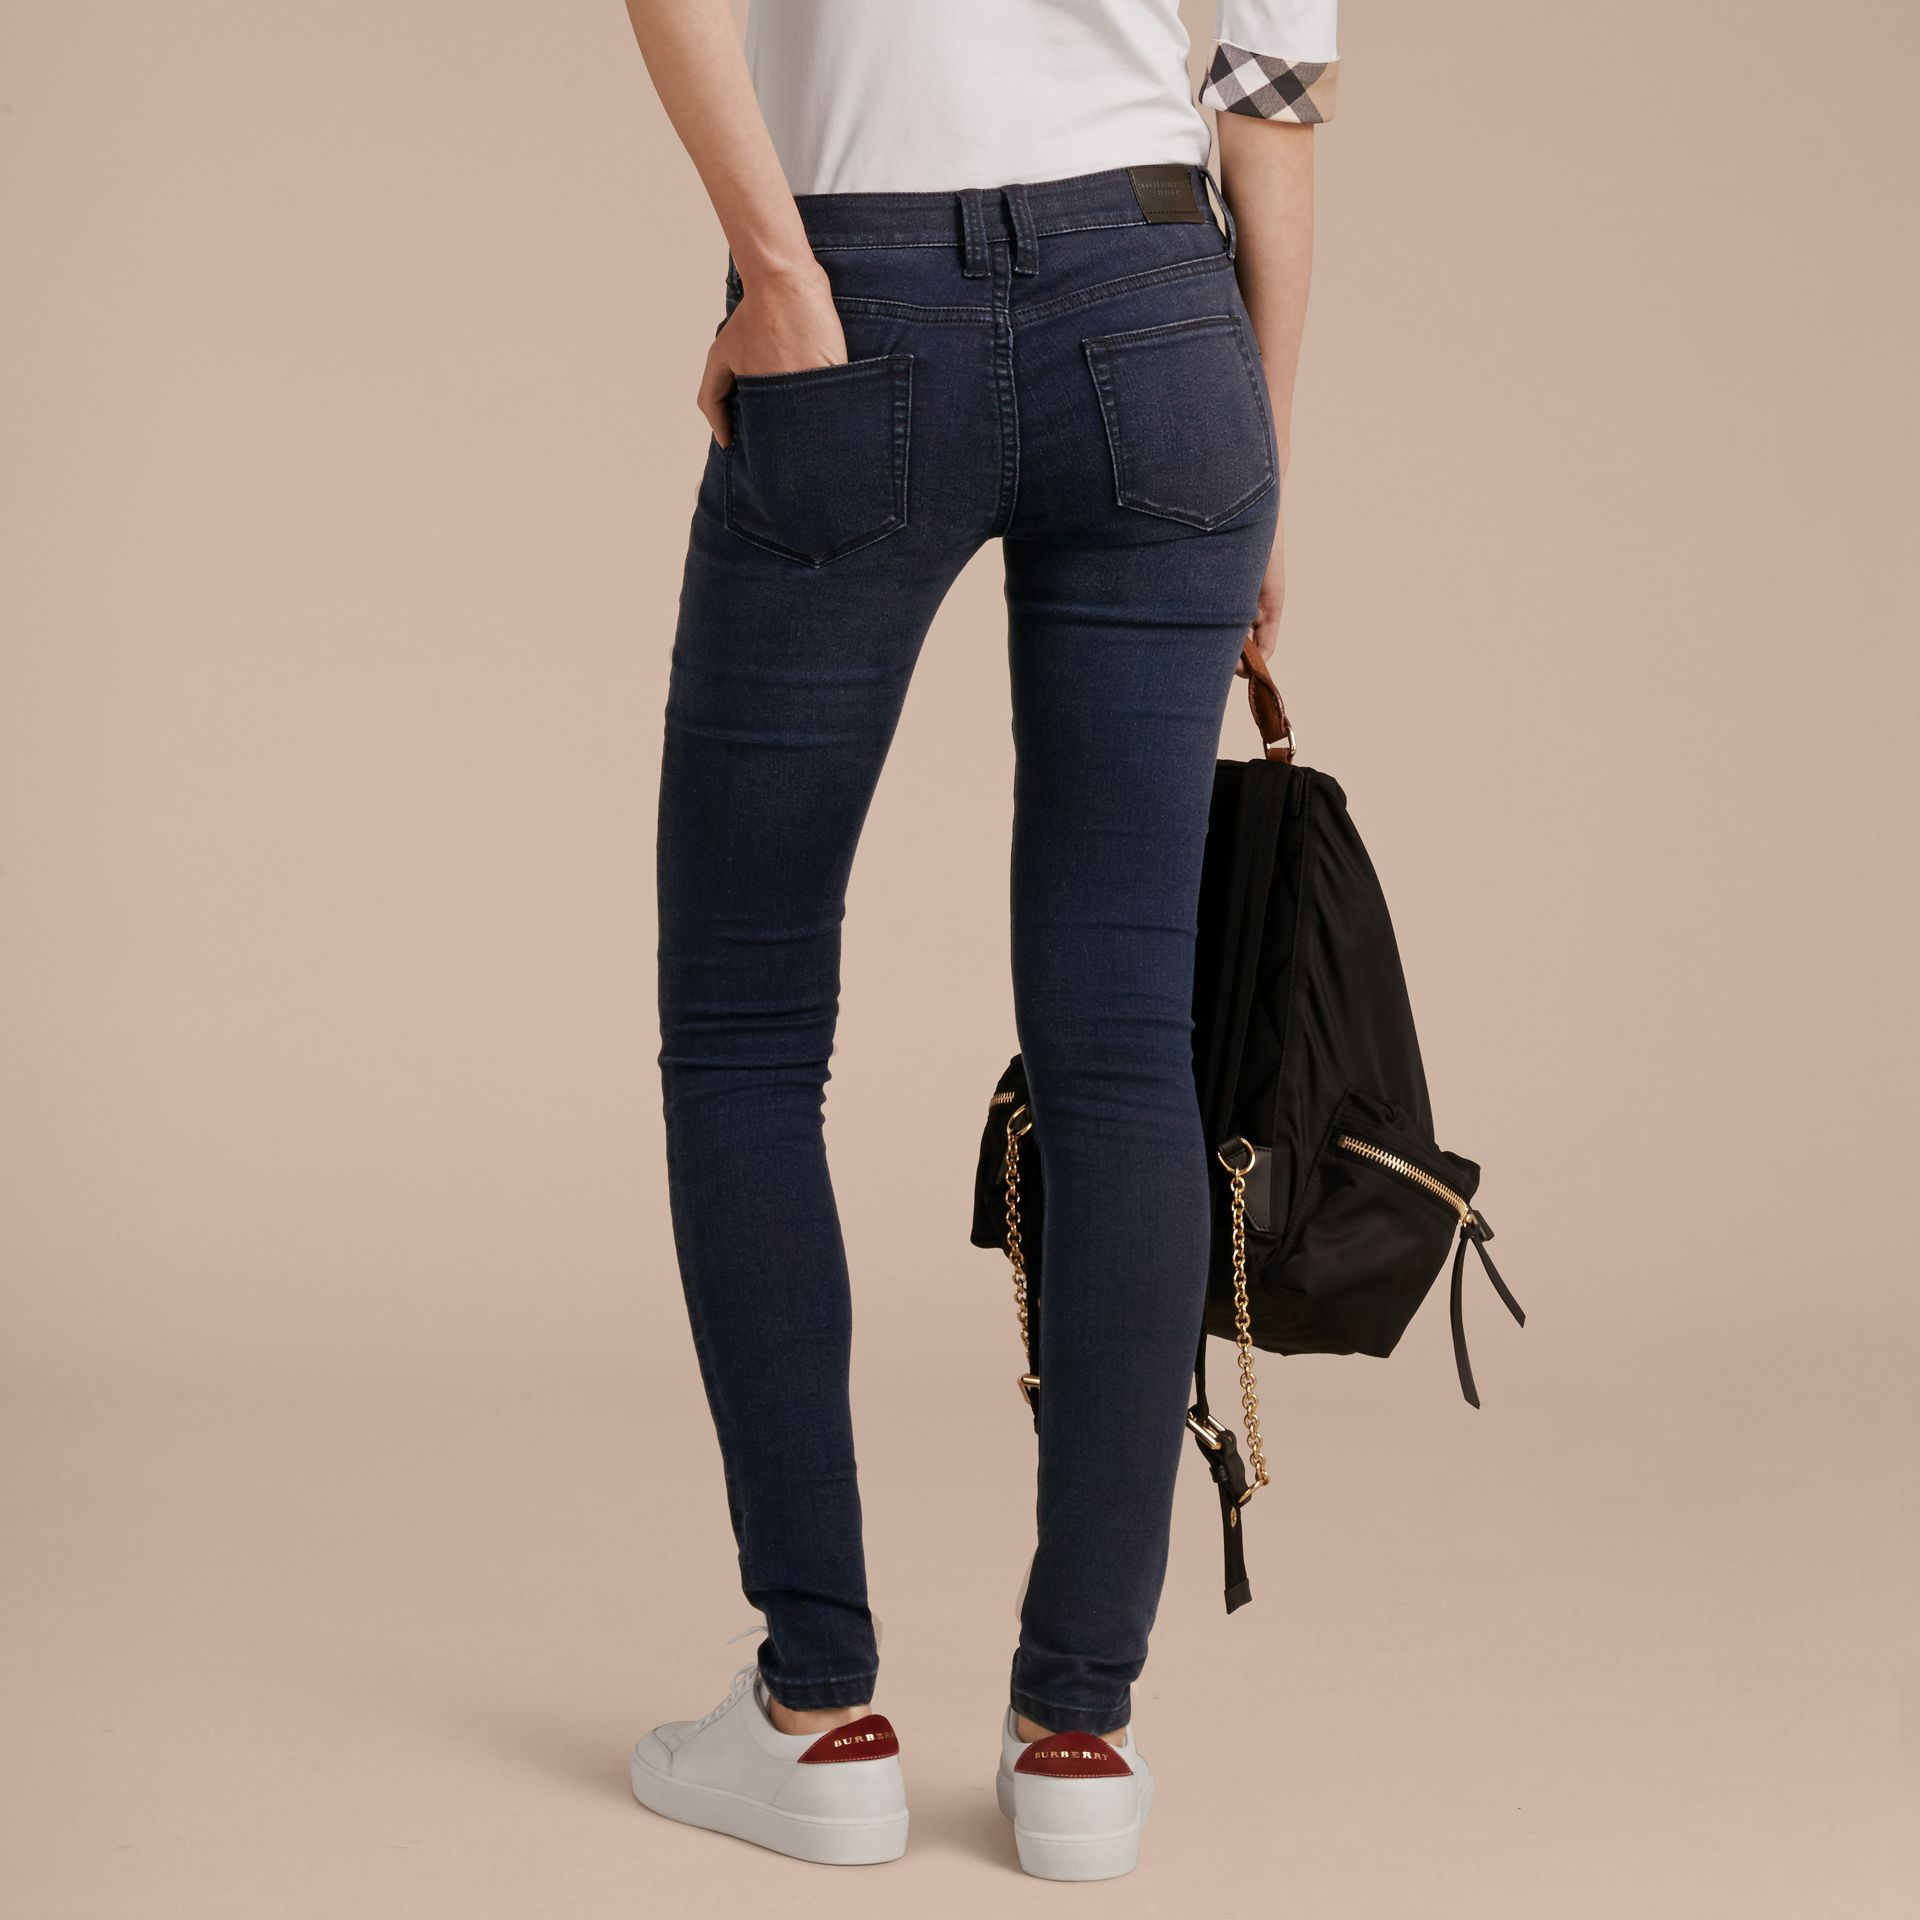 Skinny Fit Power-Stretch Jeans in Dark Indigo - Women | Burberry - gallery image 3